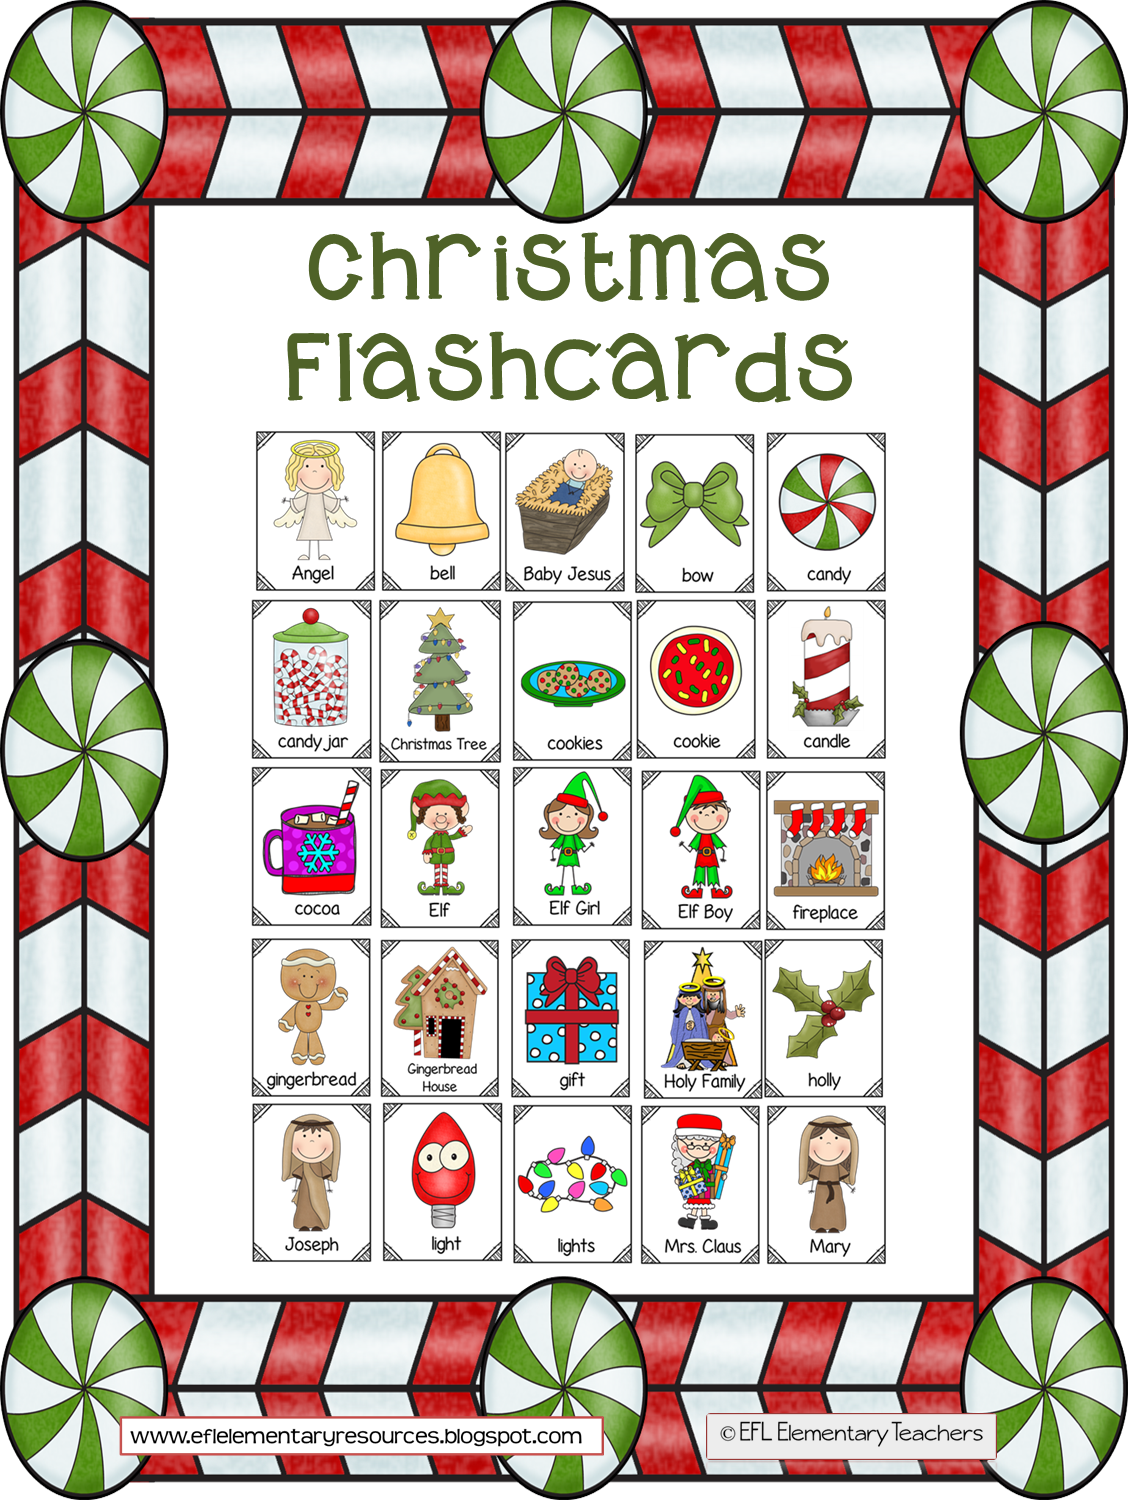 Christmas clipart letters graphic transparent download EFL Elementary Teachers: Christmas Flashcards graphic transparent download